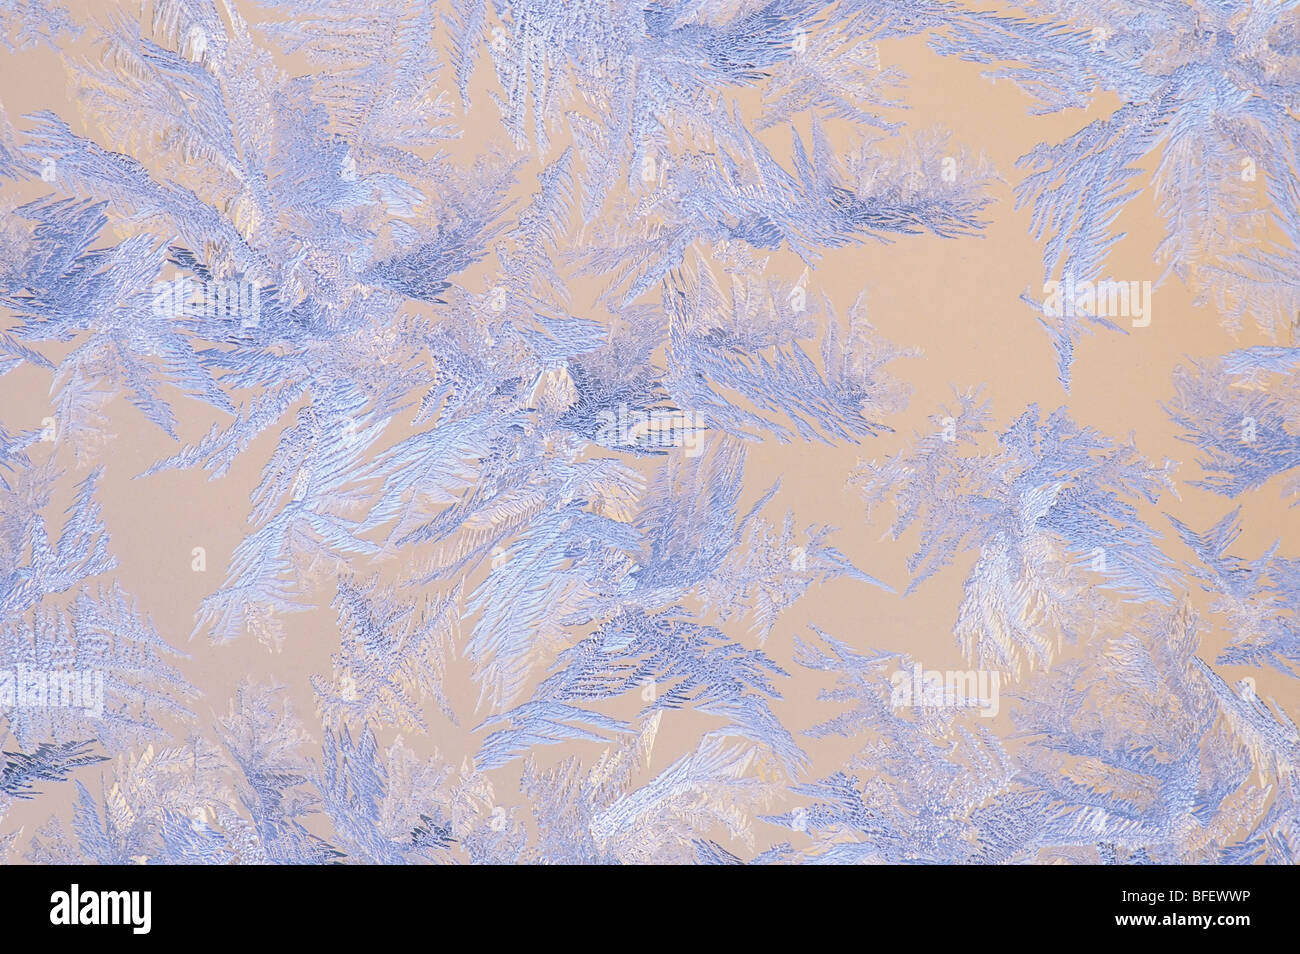 Close-up of ice crystals on window pane, Saskatchewan, Canada - Stock Image